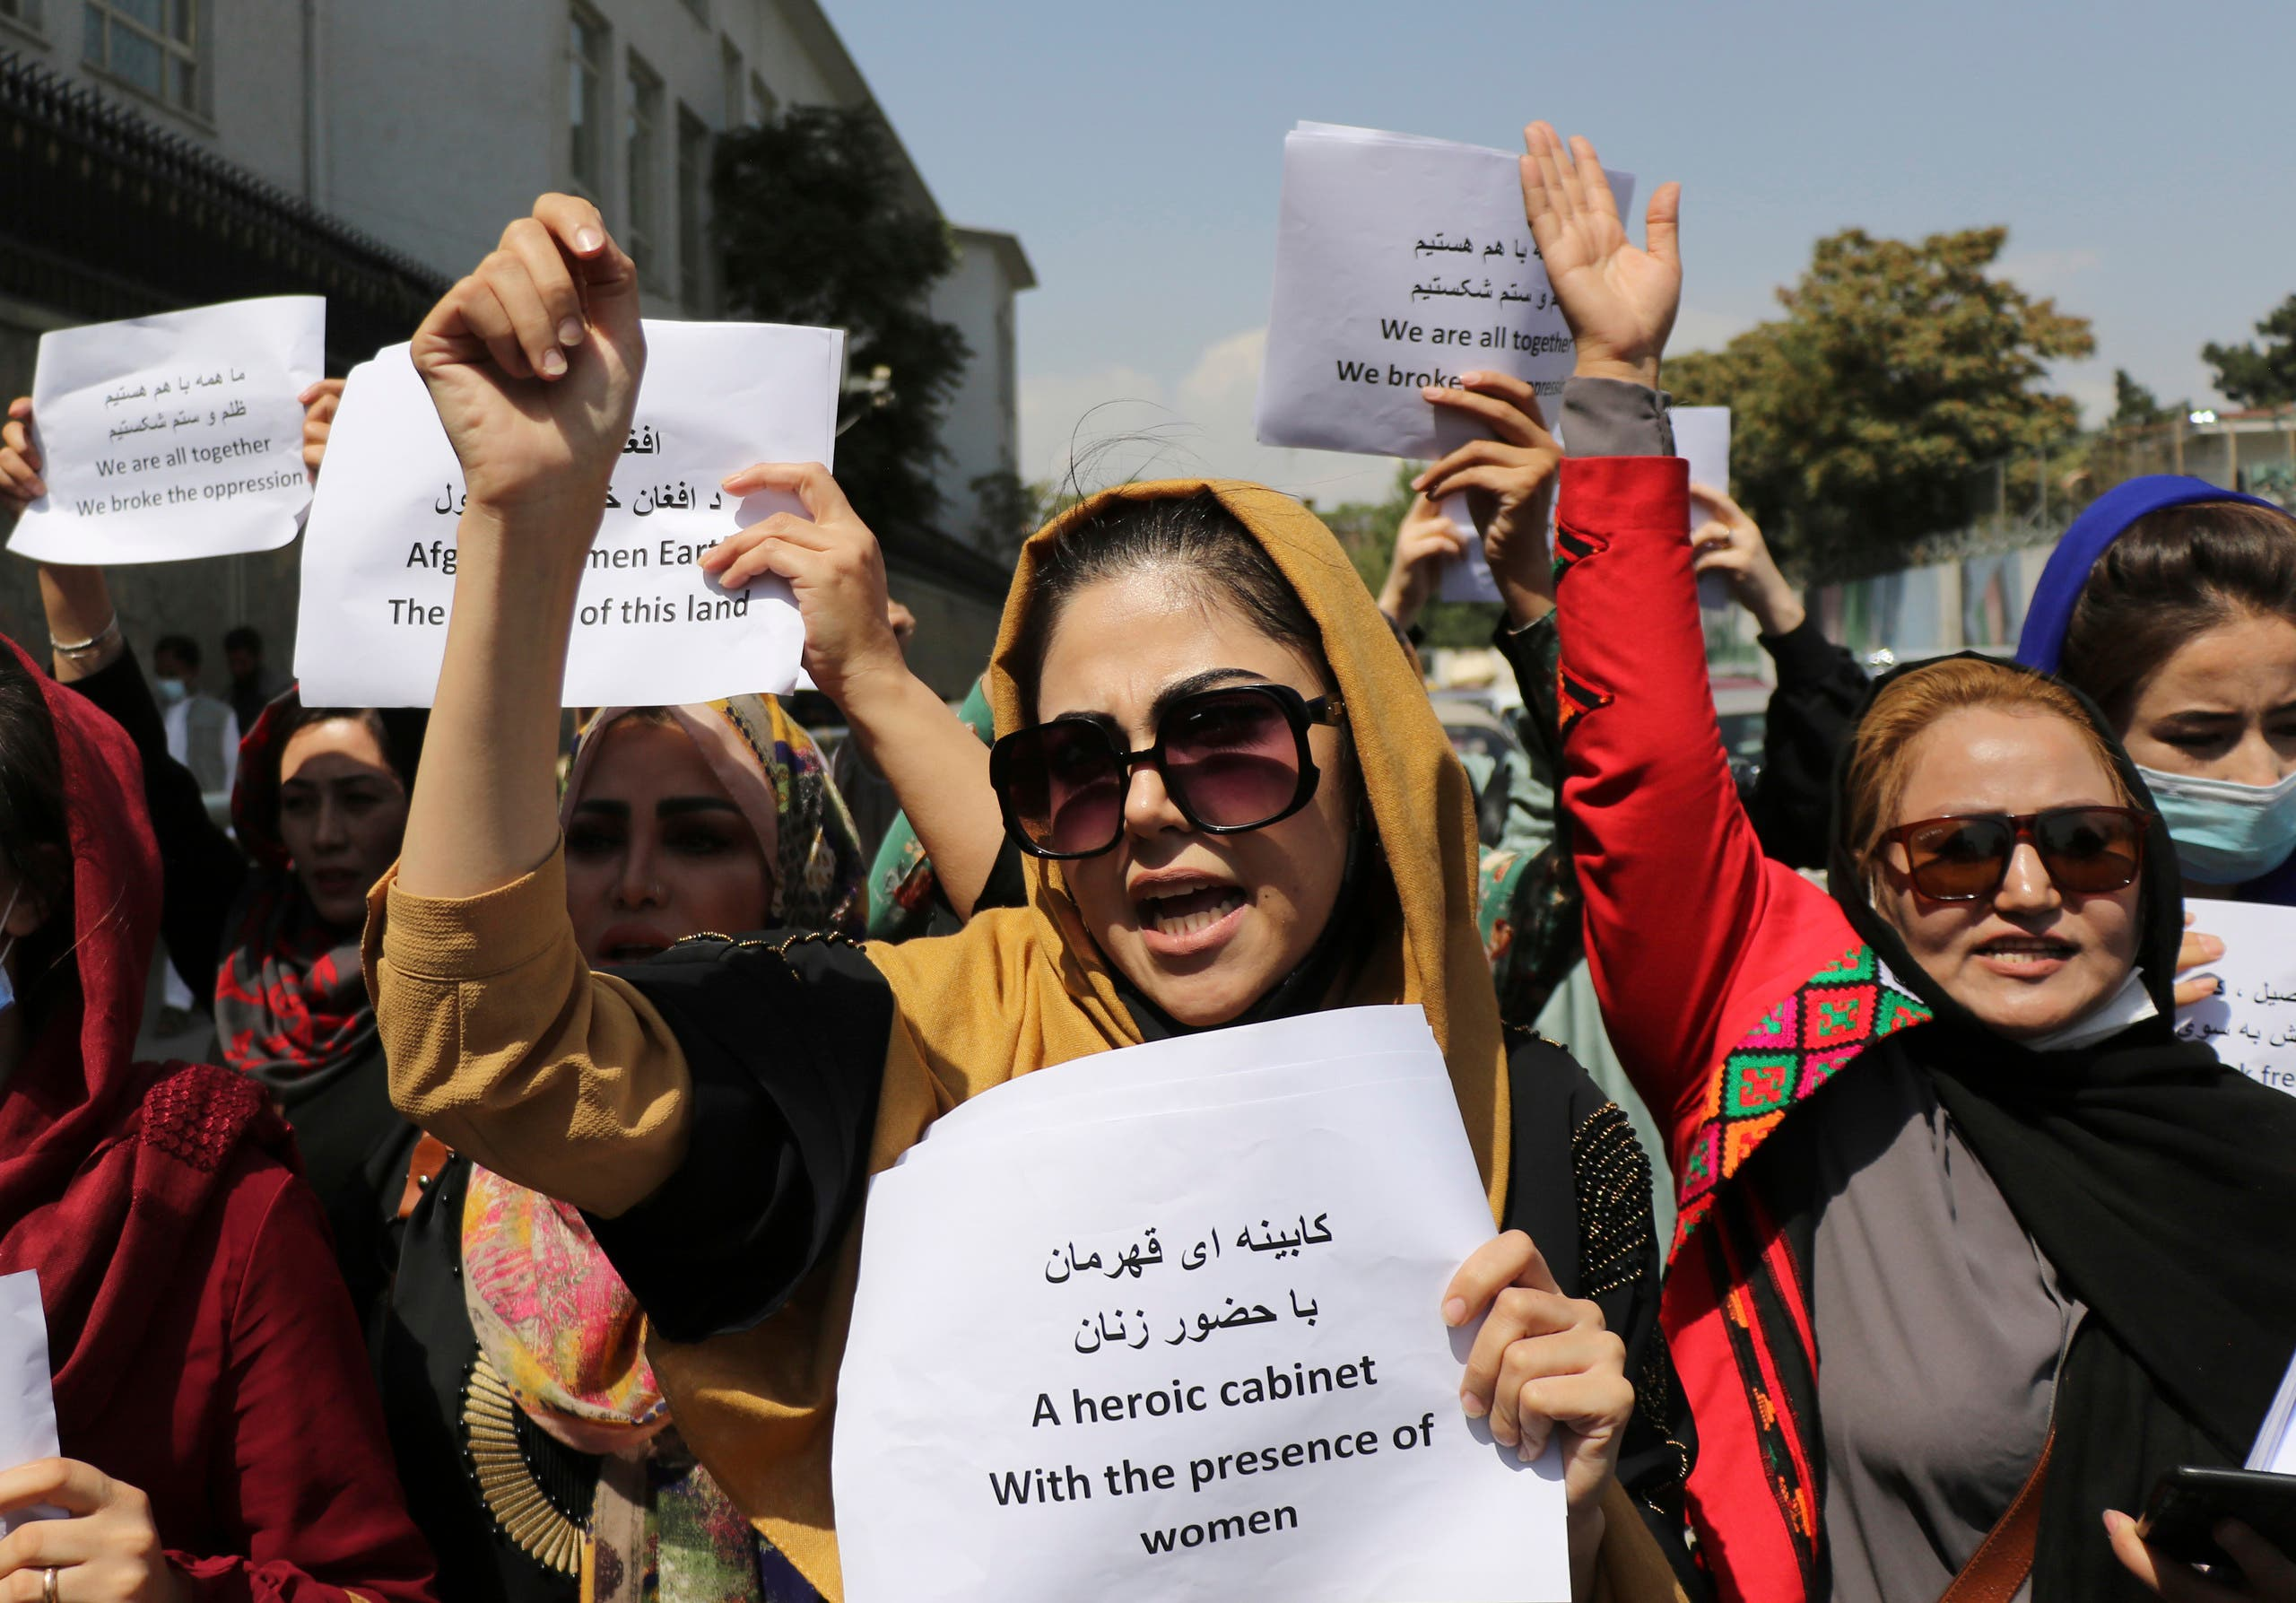 Protesters near the presidential palace in Kabul (The Associated Press)